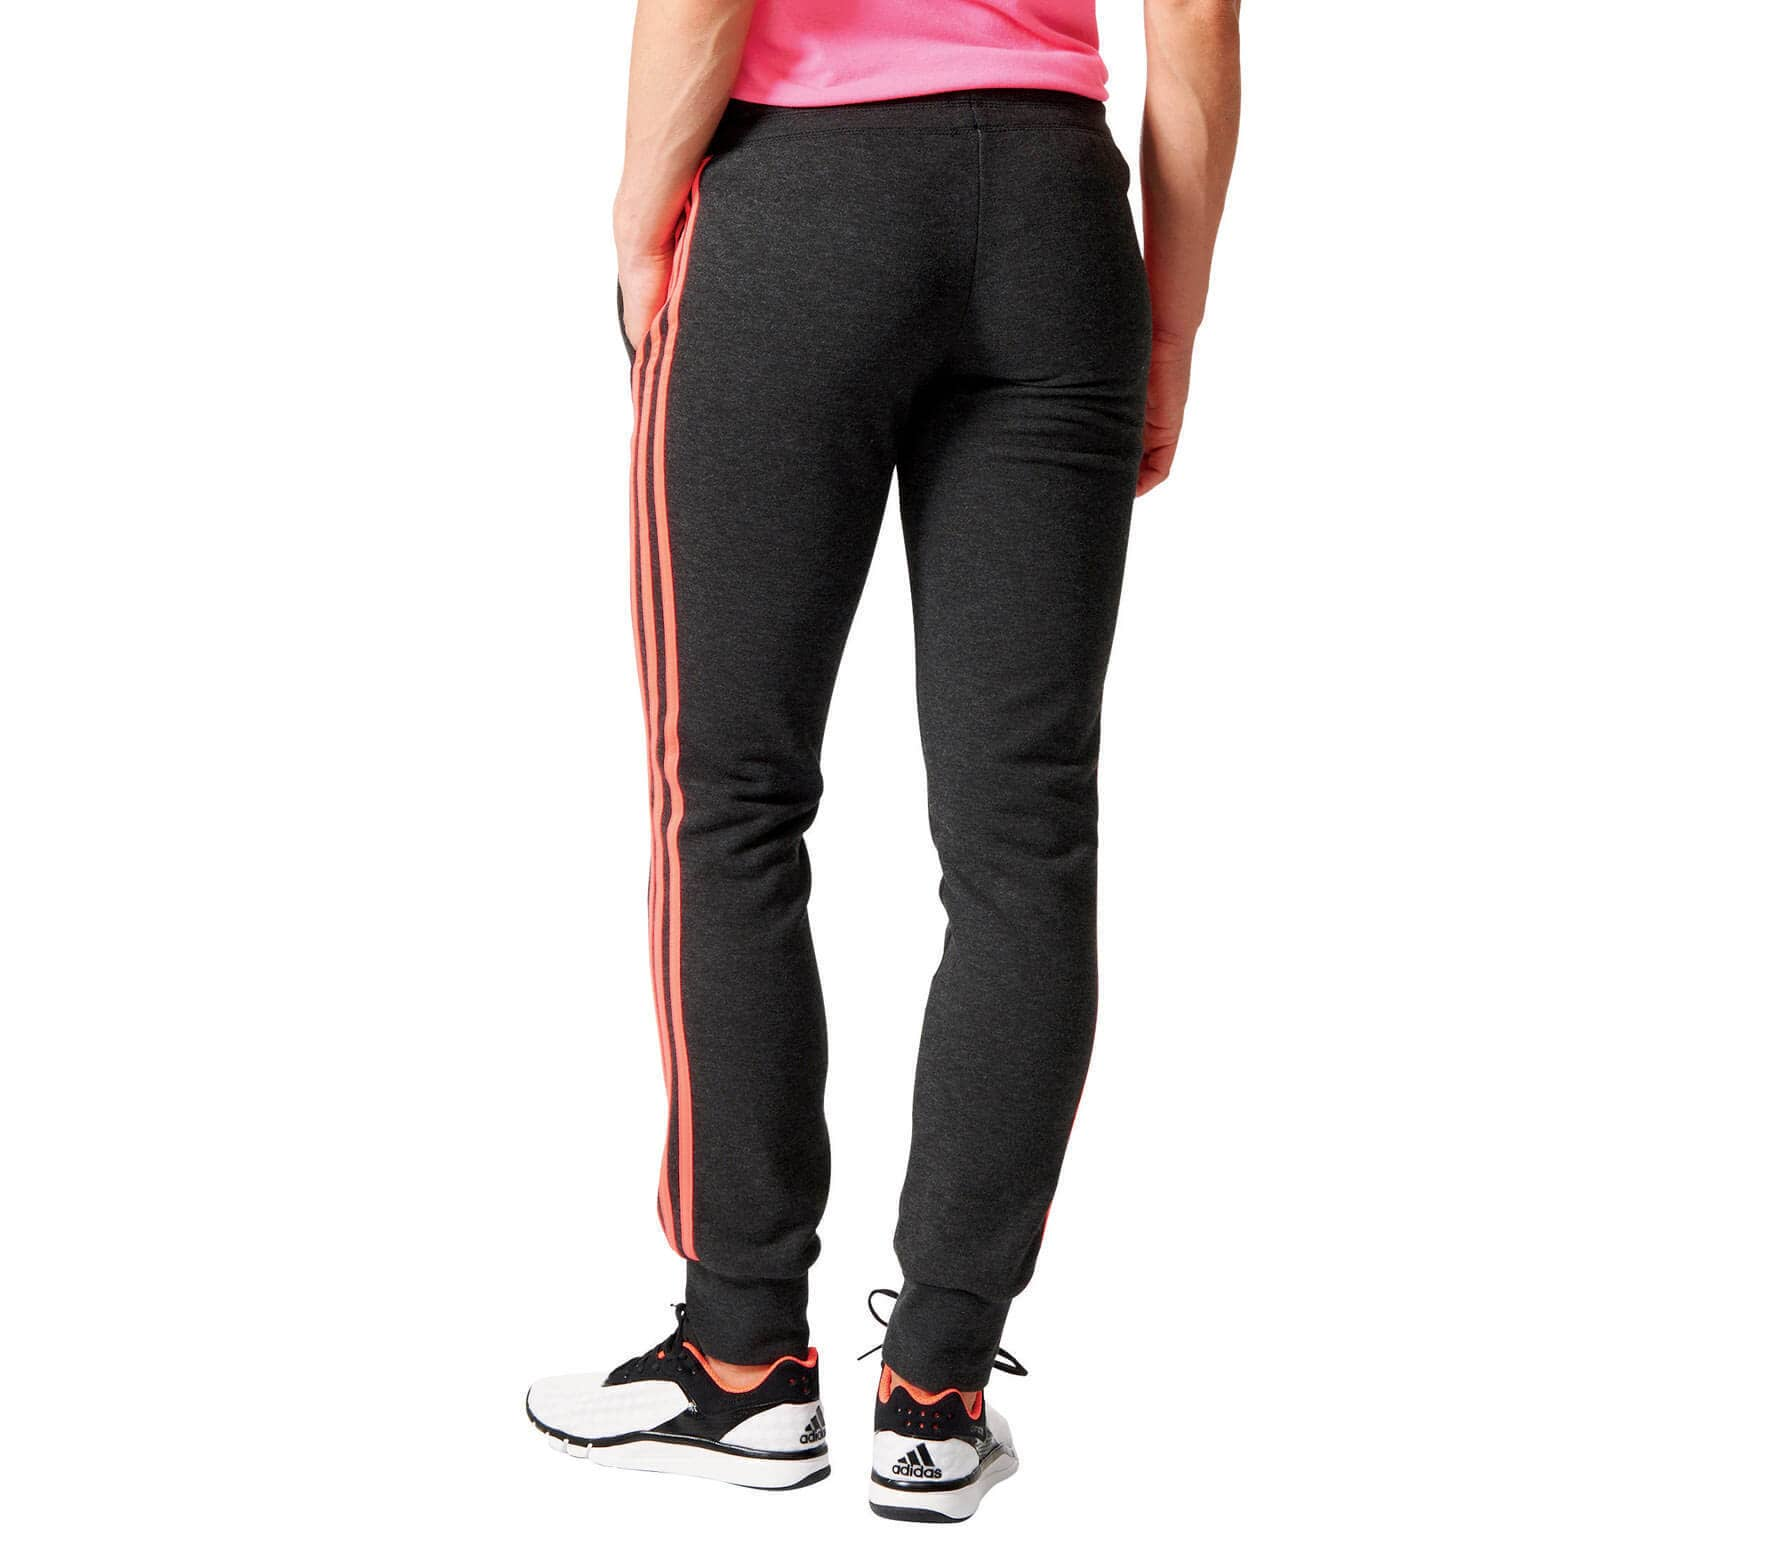 31c2701844c Adidas - Essentials 3S Cuffed Dames trainingsbroek (zwart/rood ...